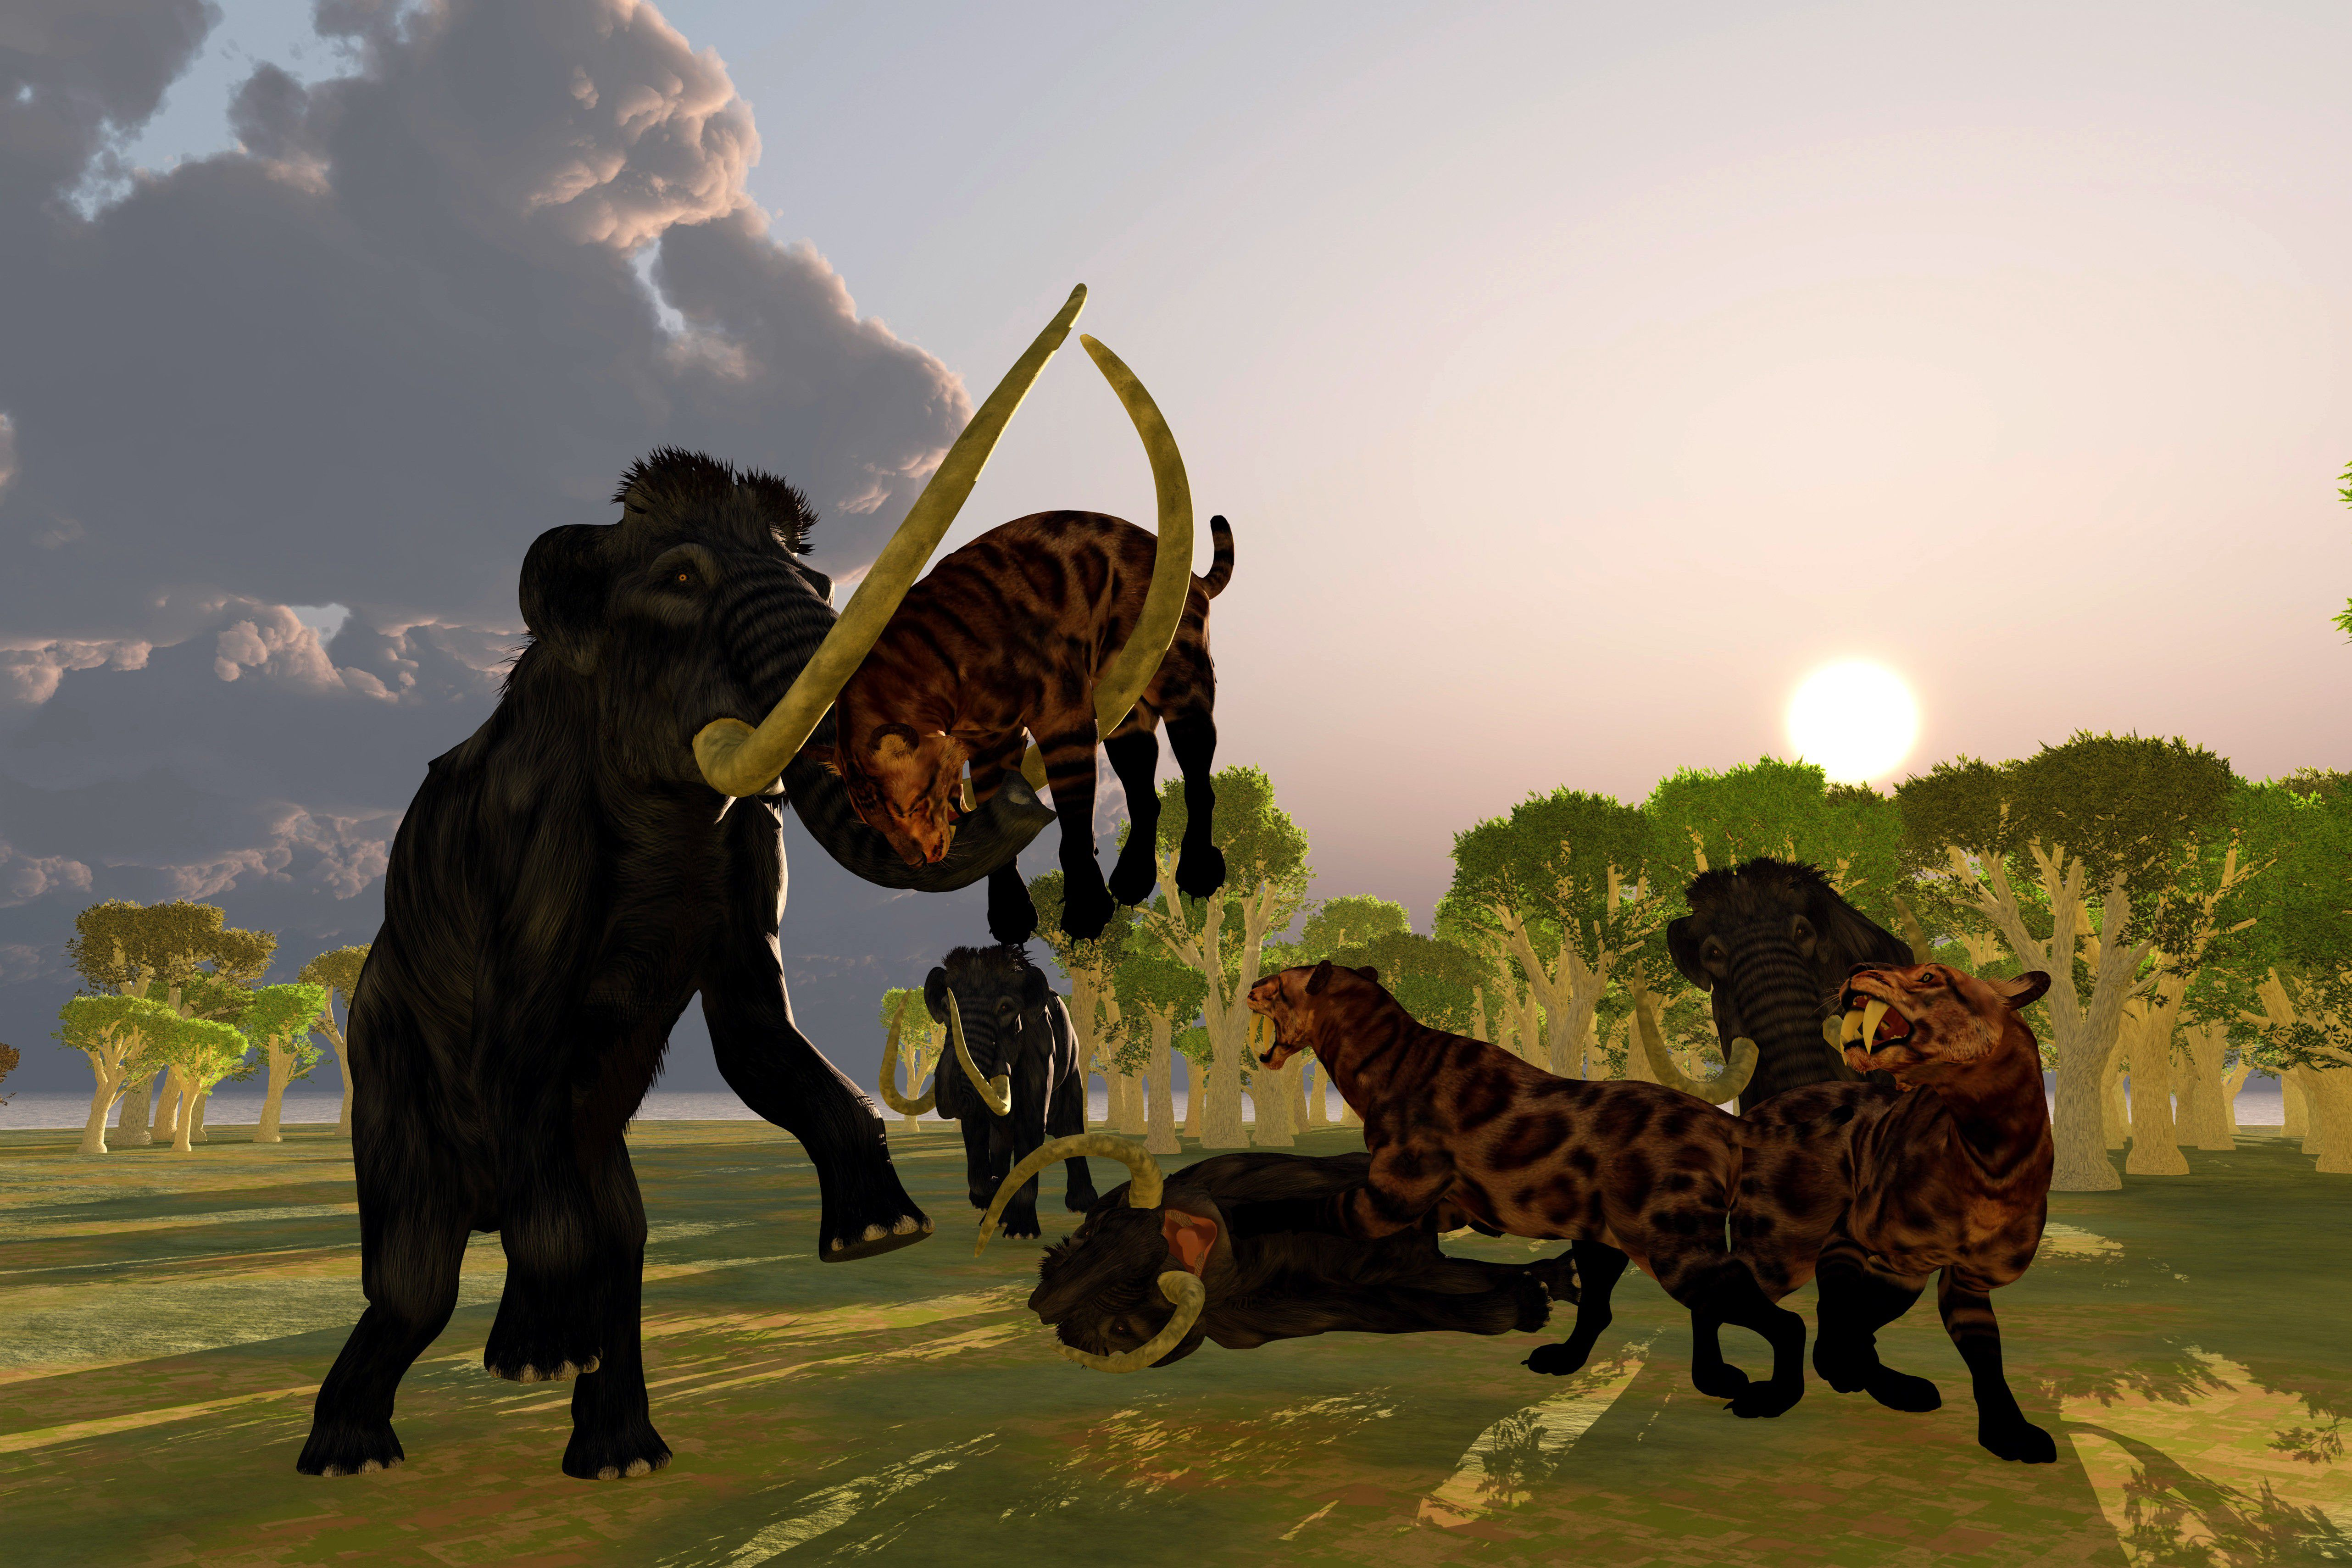 An artistic rendering of a pack of smilodons taking on a herd of mammoths